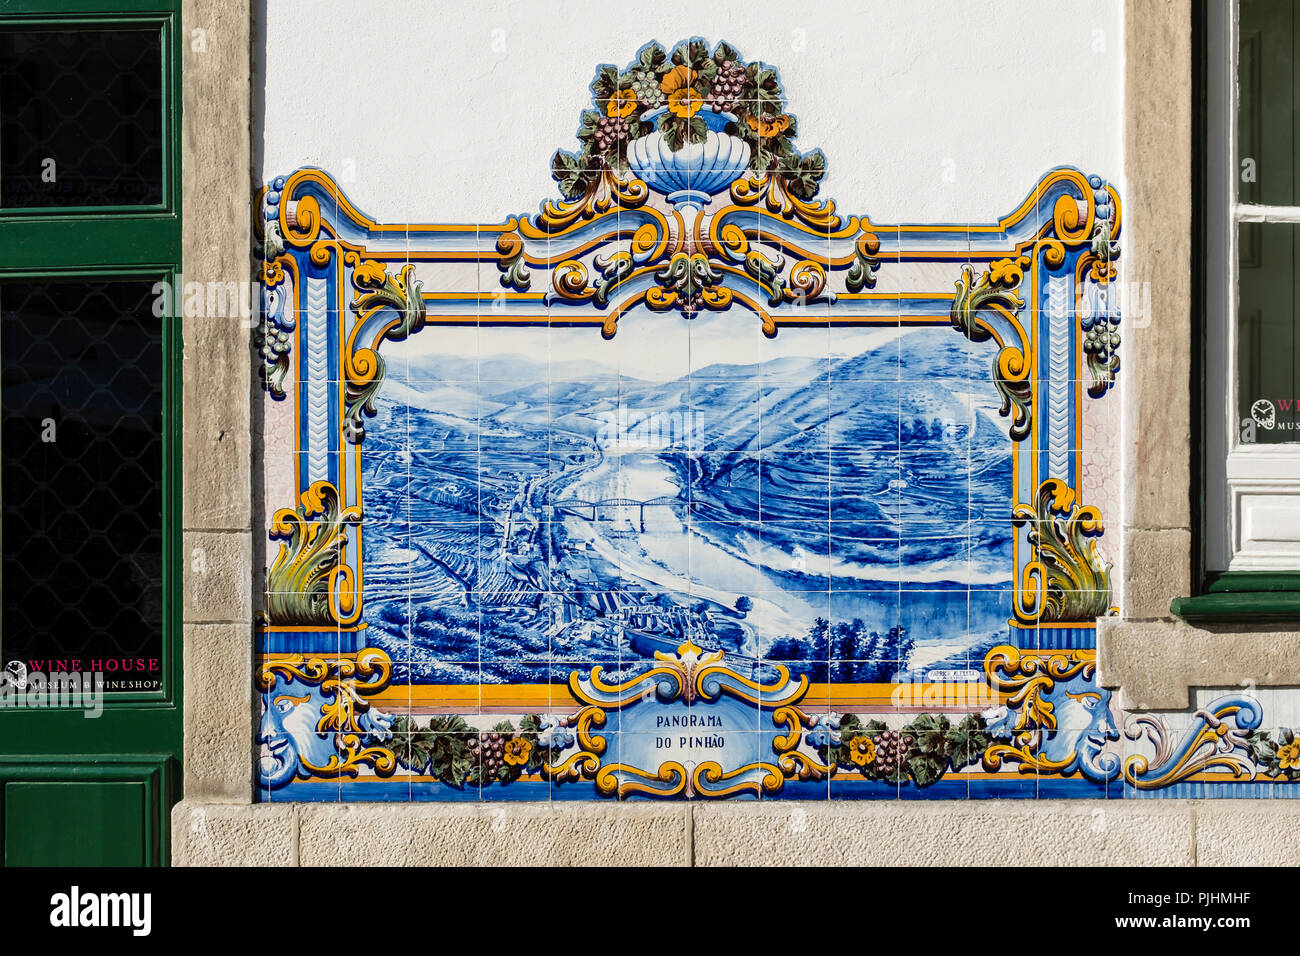 Azulejos tiles at Pinhão train station in the Douro Valley - Stock Image